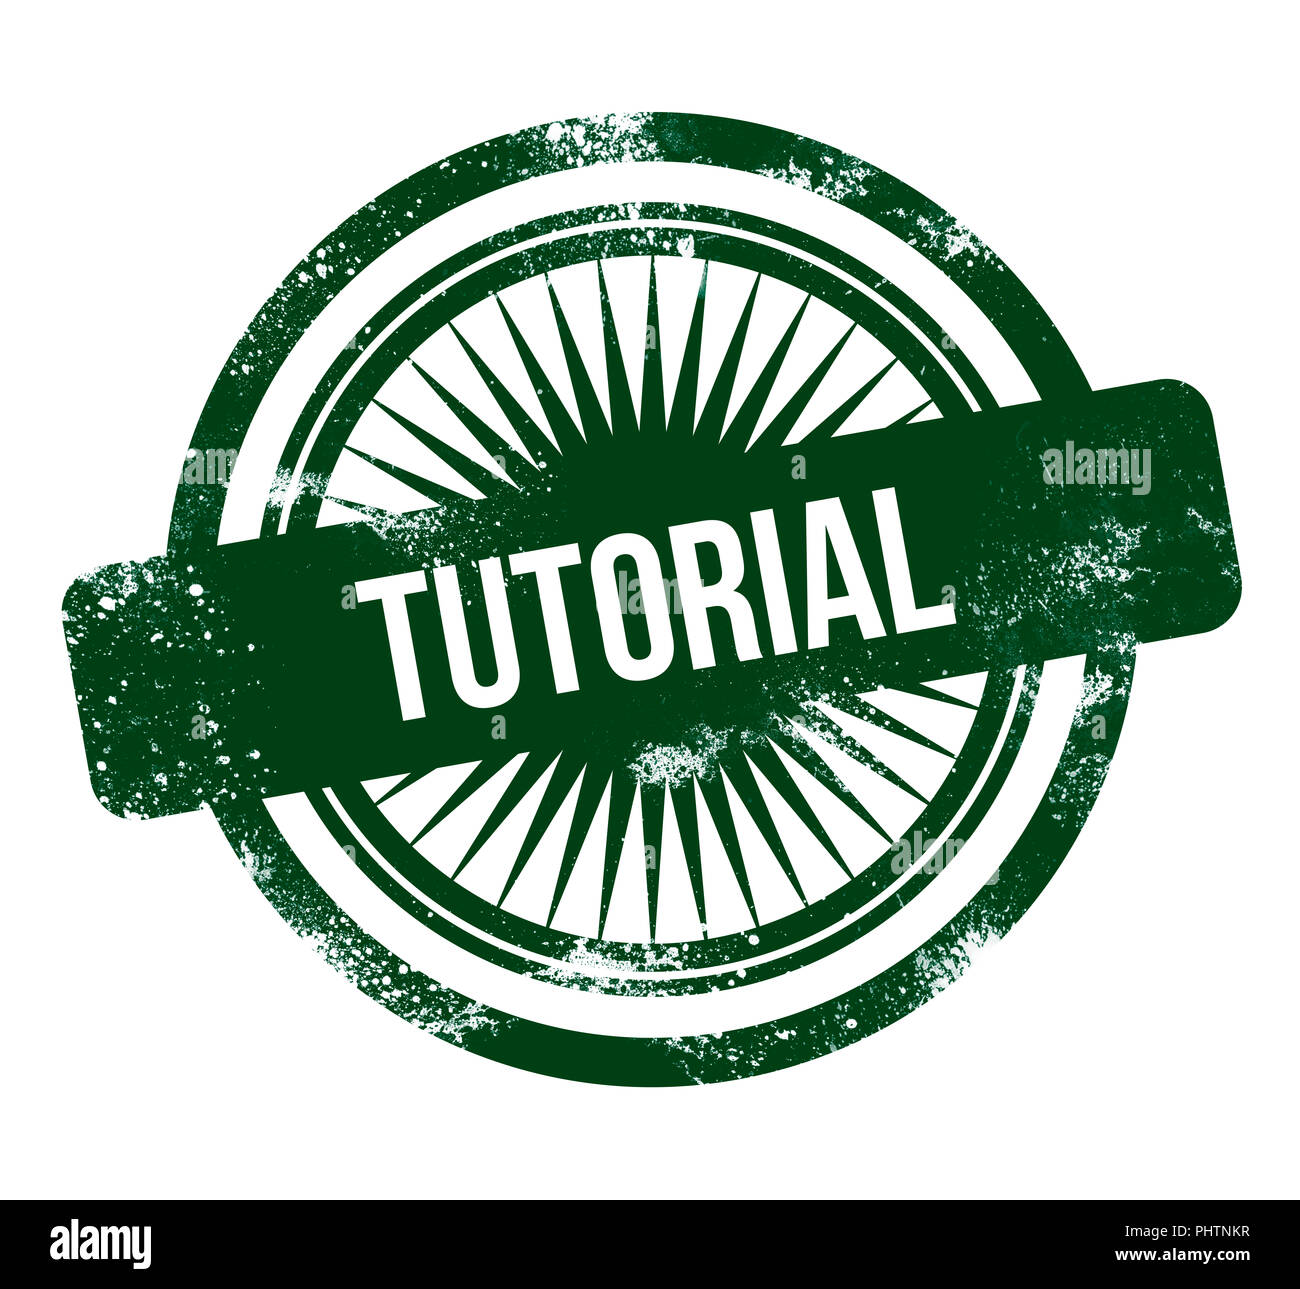 Tutorial - grunge sello verde Foto de stock